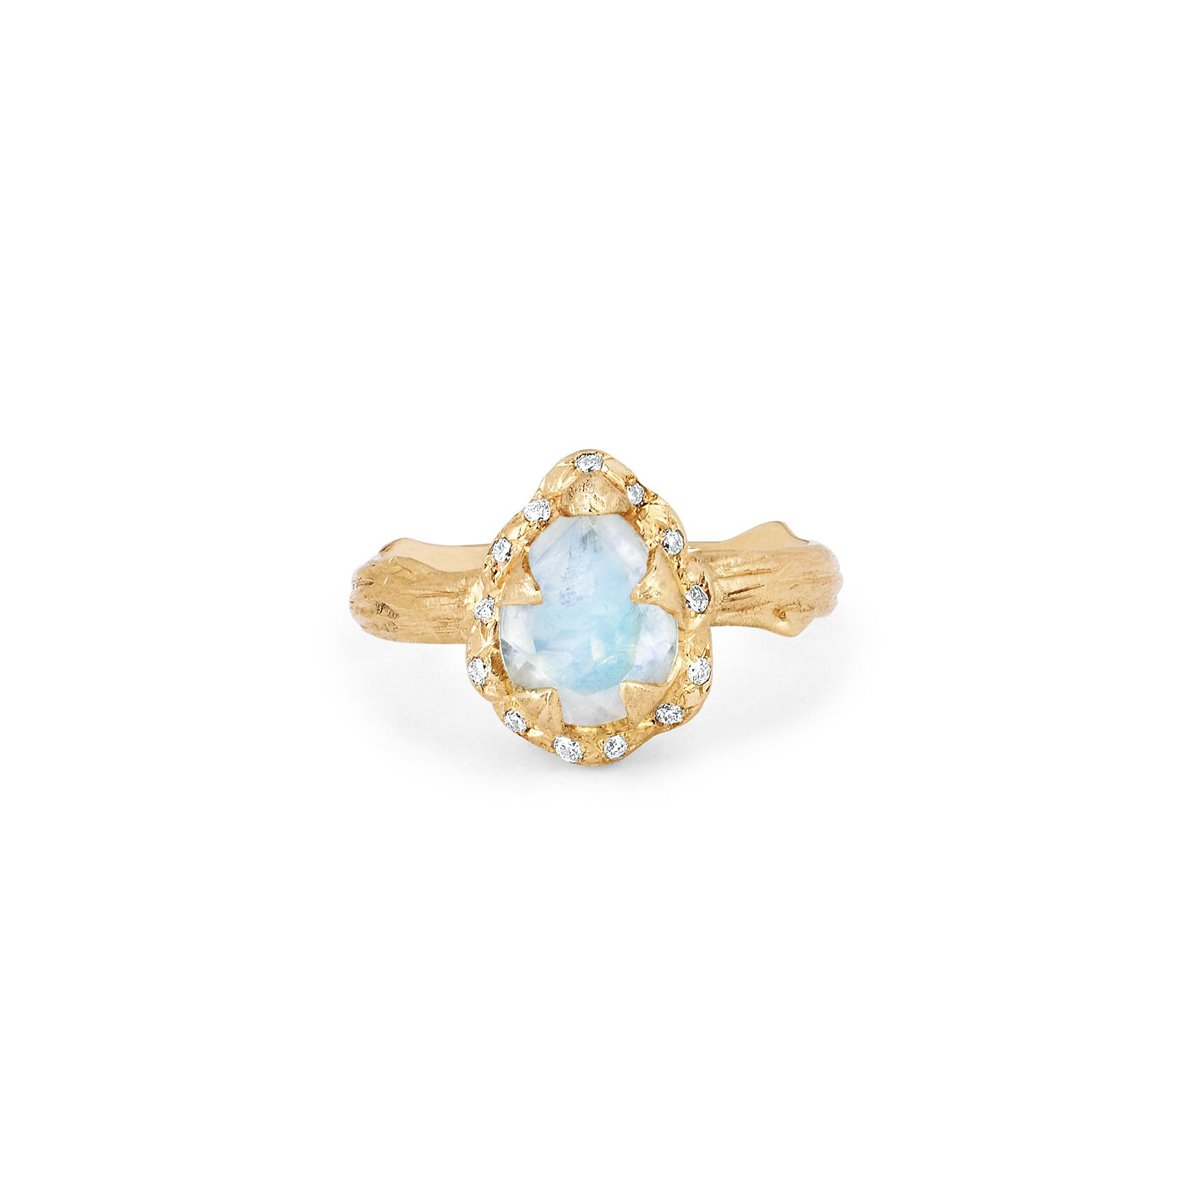 Micro Queen Water Drop Moonstone Ring with Sprinkled Diamonds